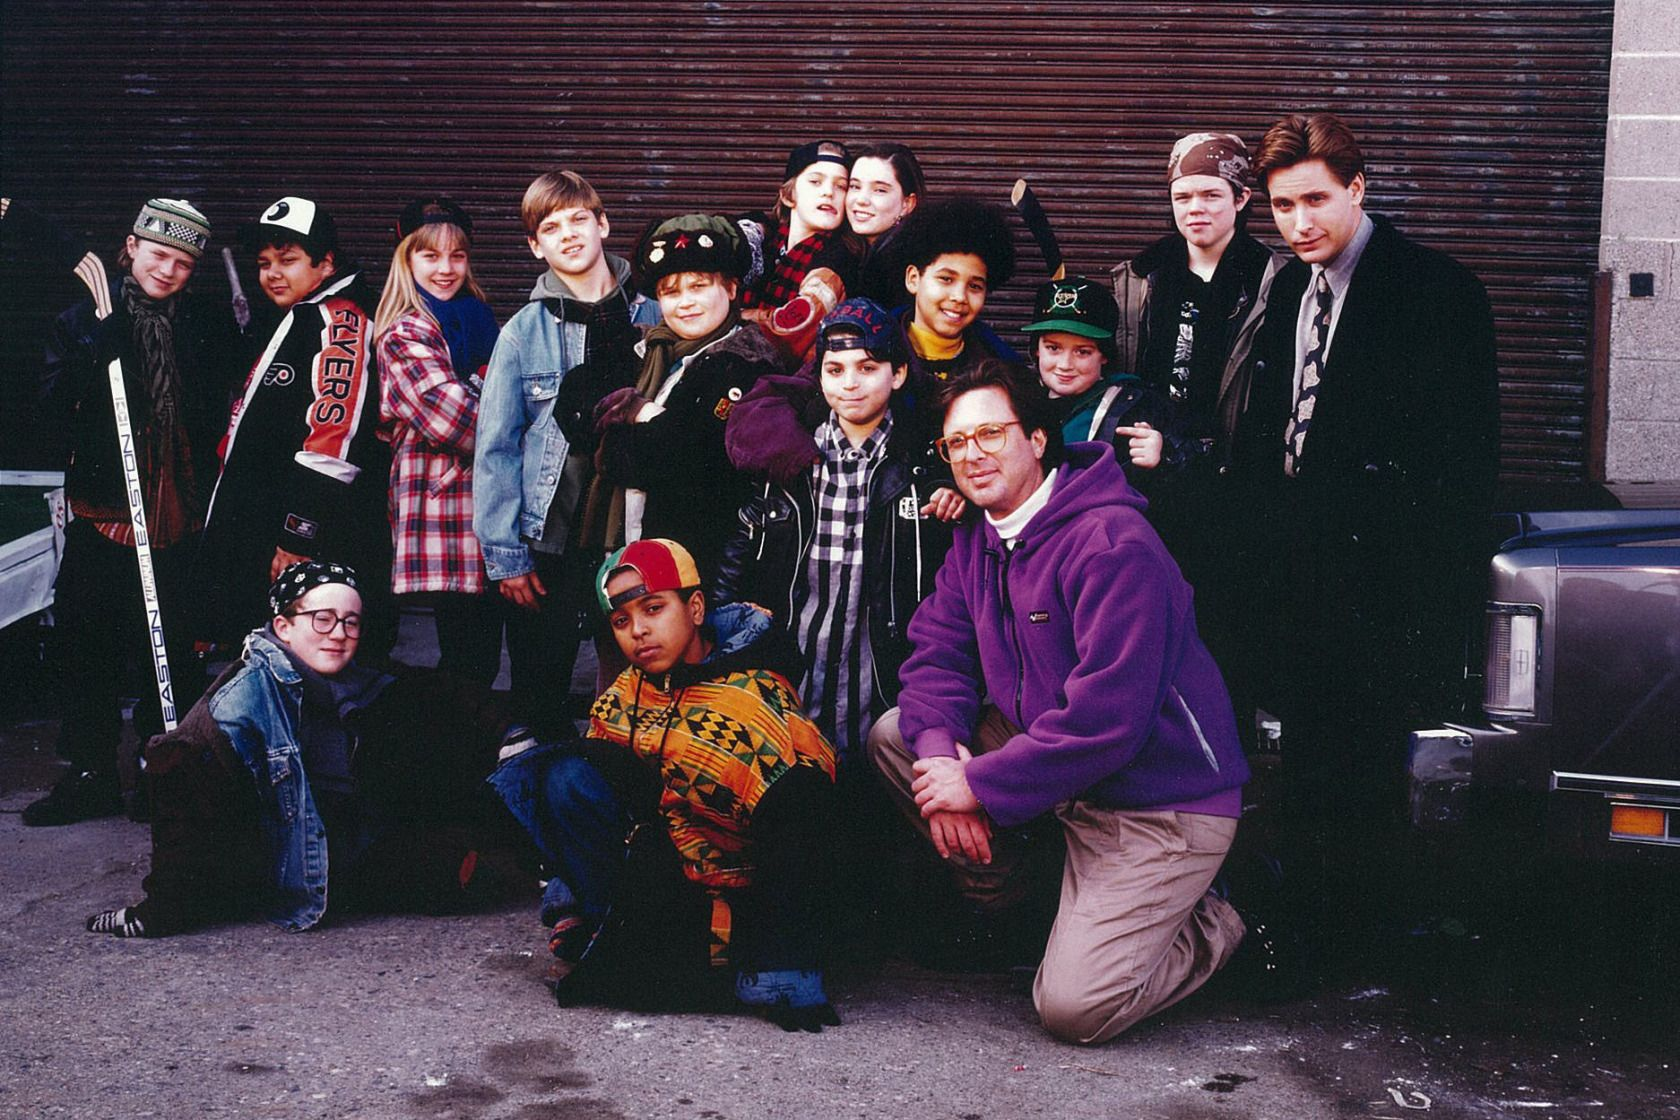 The Kids From The Mighty Ducks: Where Are They Now